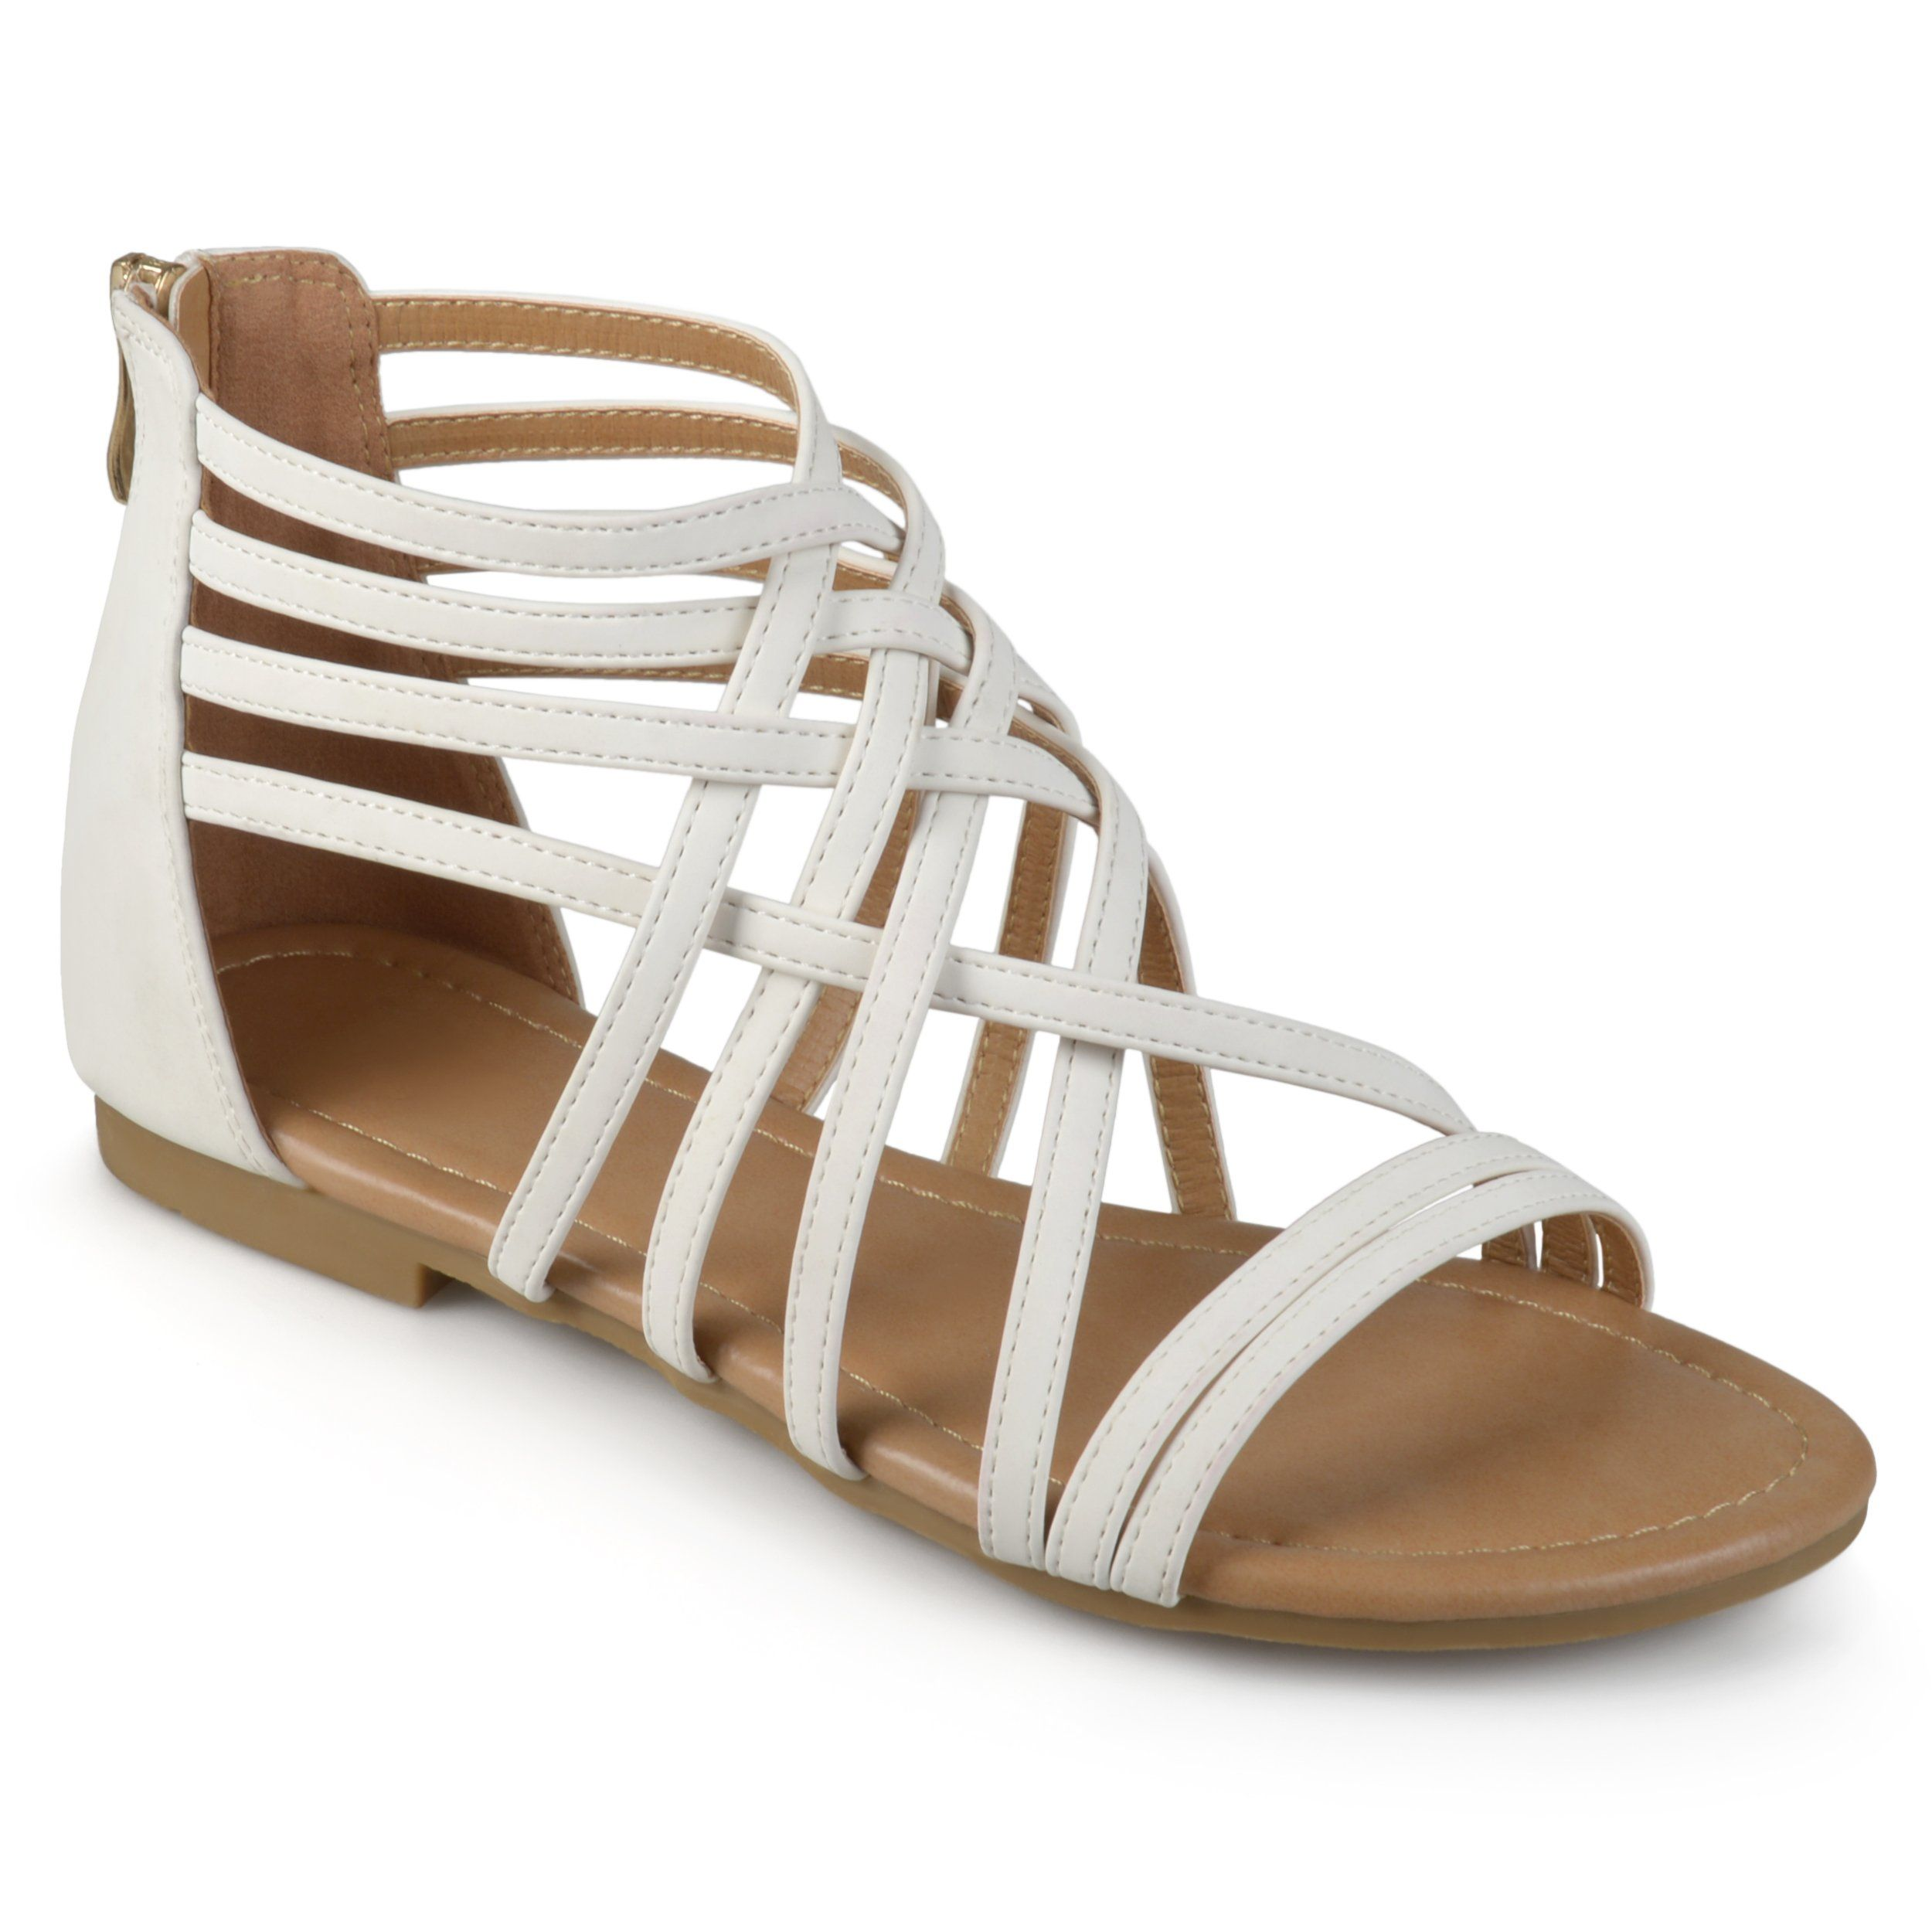 f13a639b947 Journee Collection Women s  Hanni  Flat Gladiator Sandals (Medium - White -  7.5) (Microsuede)